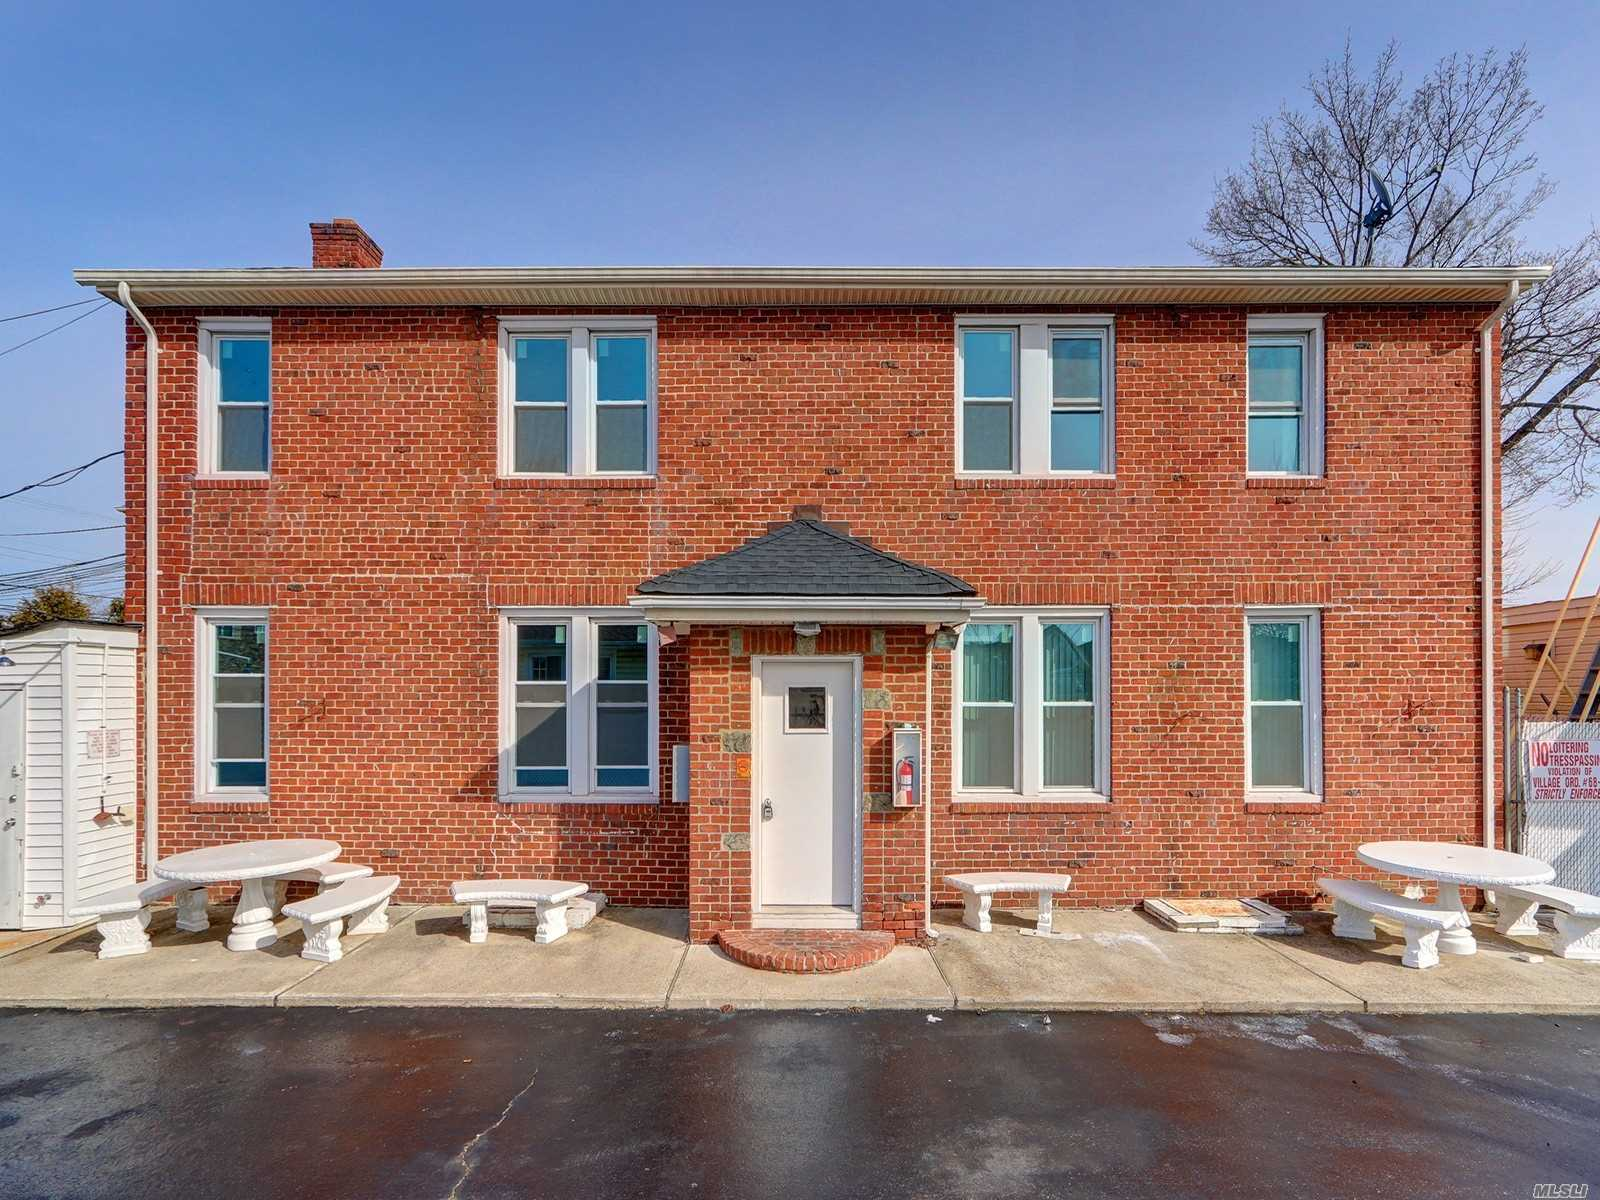 Magnificent Legal 4 Family, Inc. Vlg, Solid Brick Free Standing Building In Farmingdale, All Brand New Windows, Brand New Gas Heating System, New Roofs, New Gas Connections, Updated Kitchen, Cac, All Outside New Heating, Oversized Commercial 3 Car Detached Gar, Long Driveway & Plenty Of Onsite Parking. Walk To Town, Shopping. Must See!!